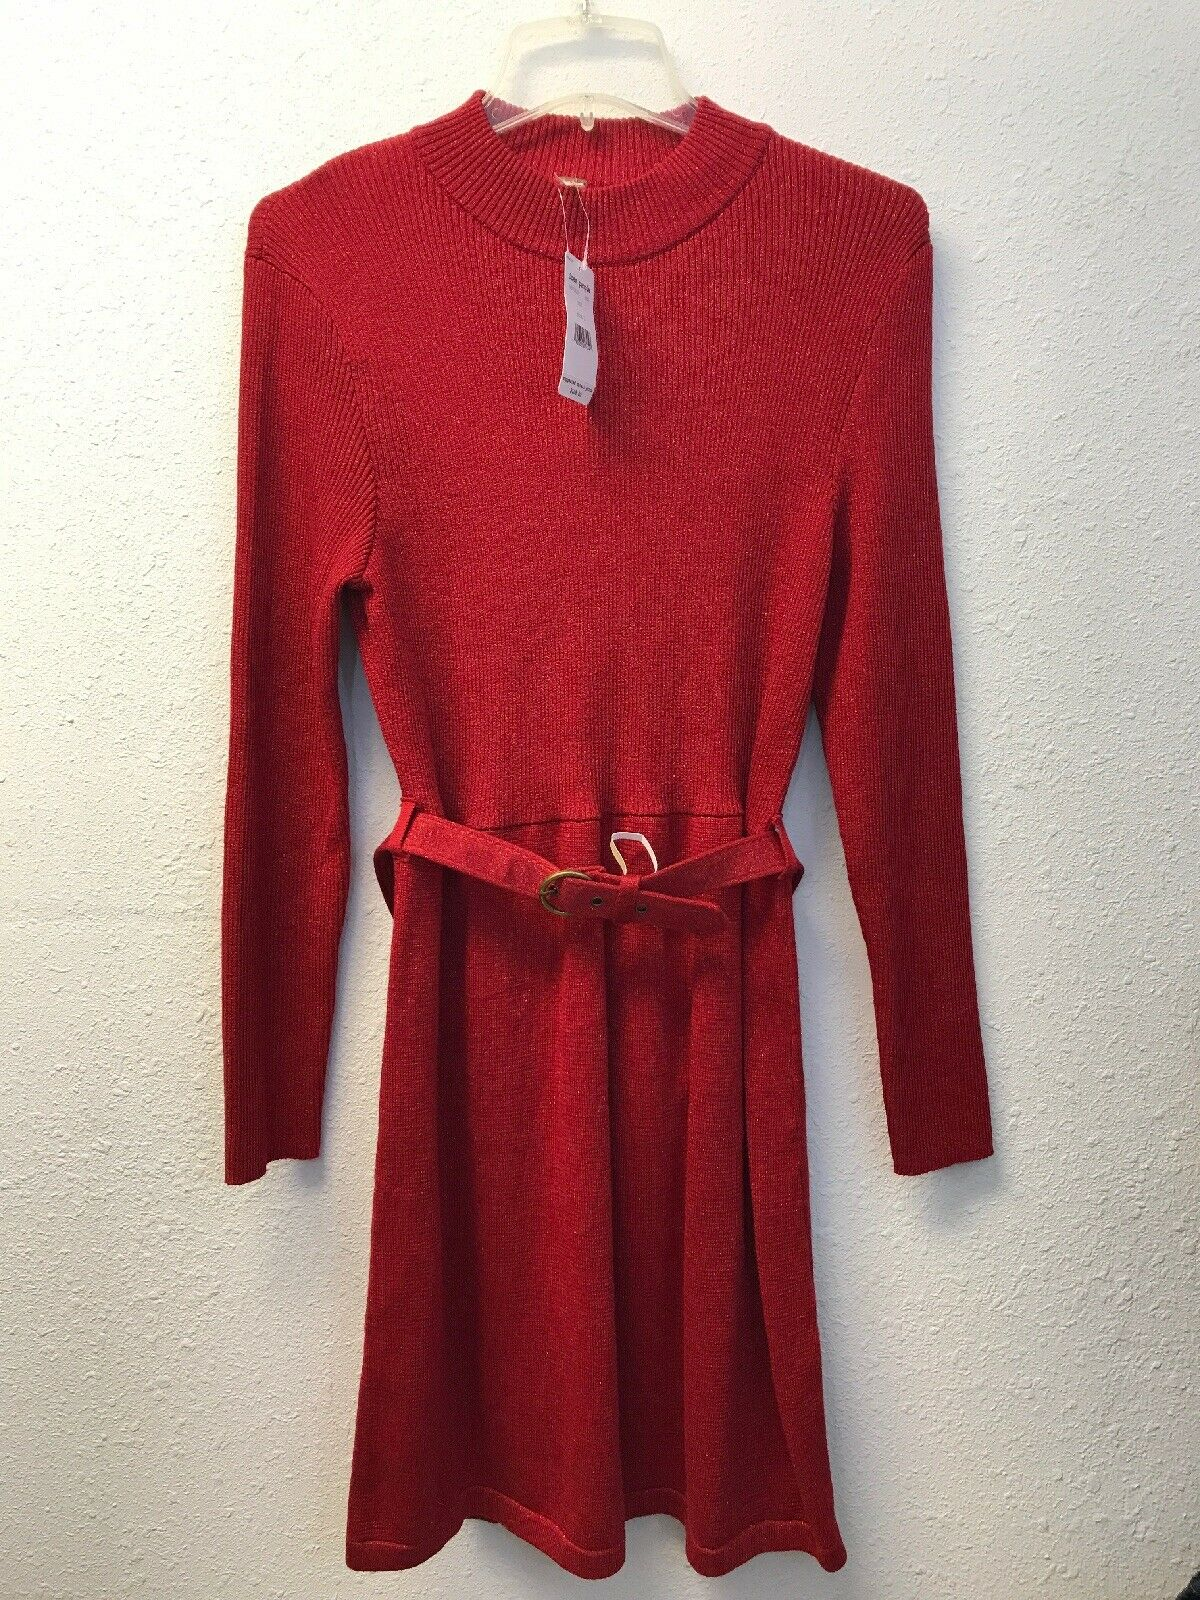 NWT Free People French Girl Contrast Mini Dress rot Größe L Long Sleeve Belt